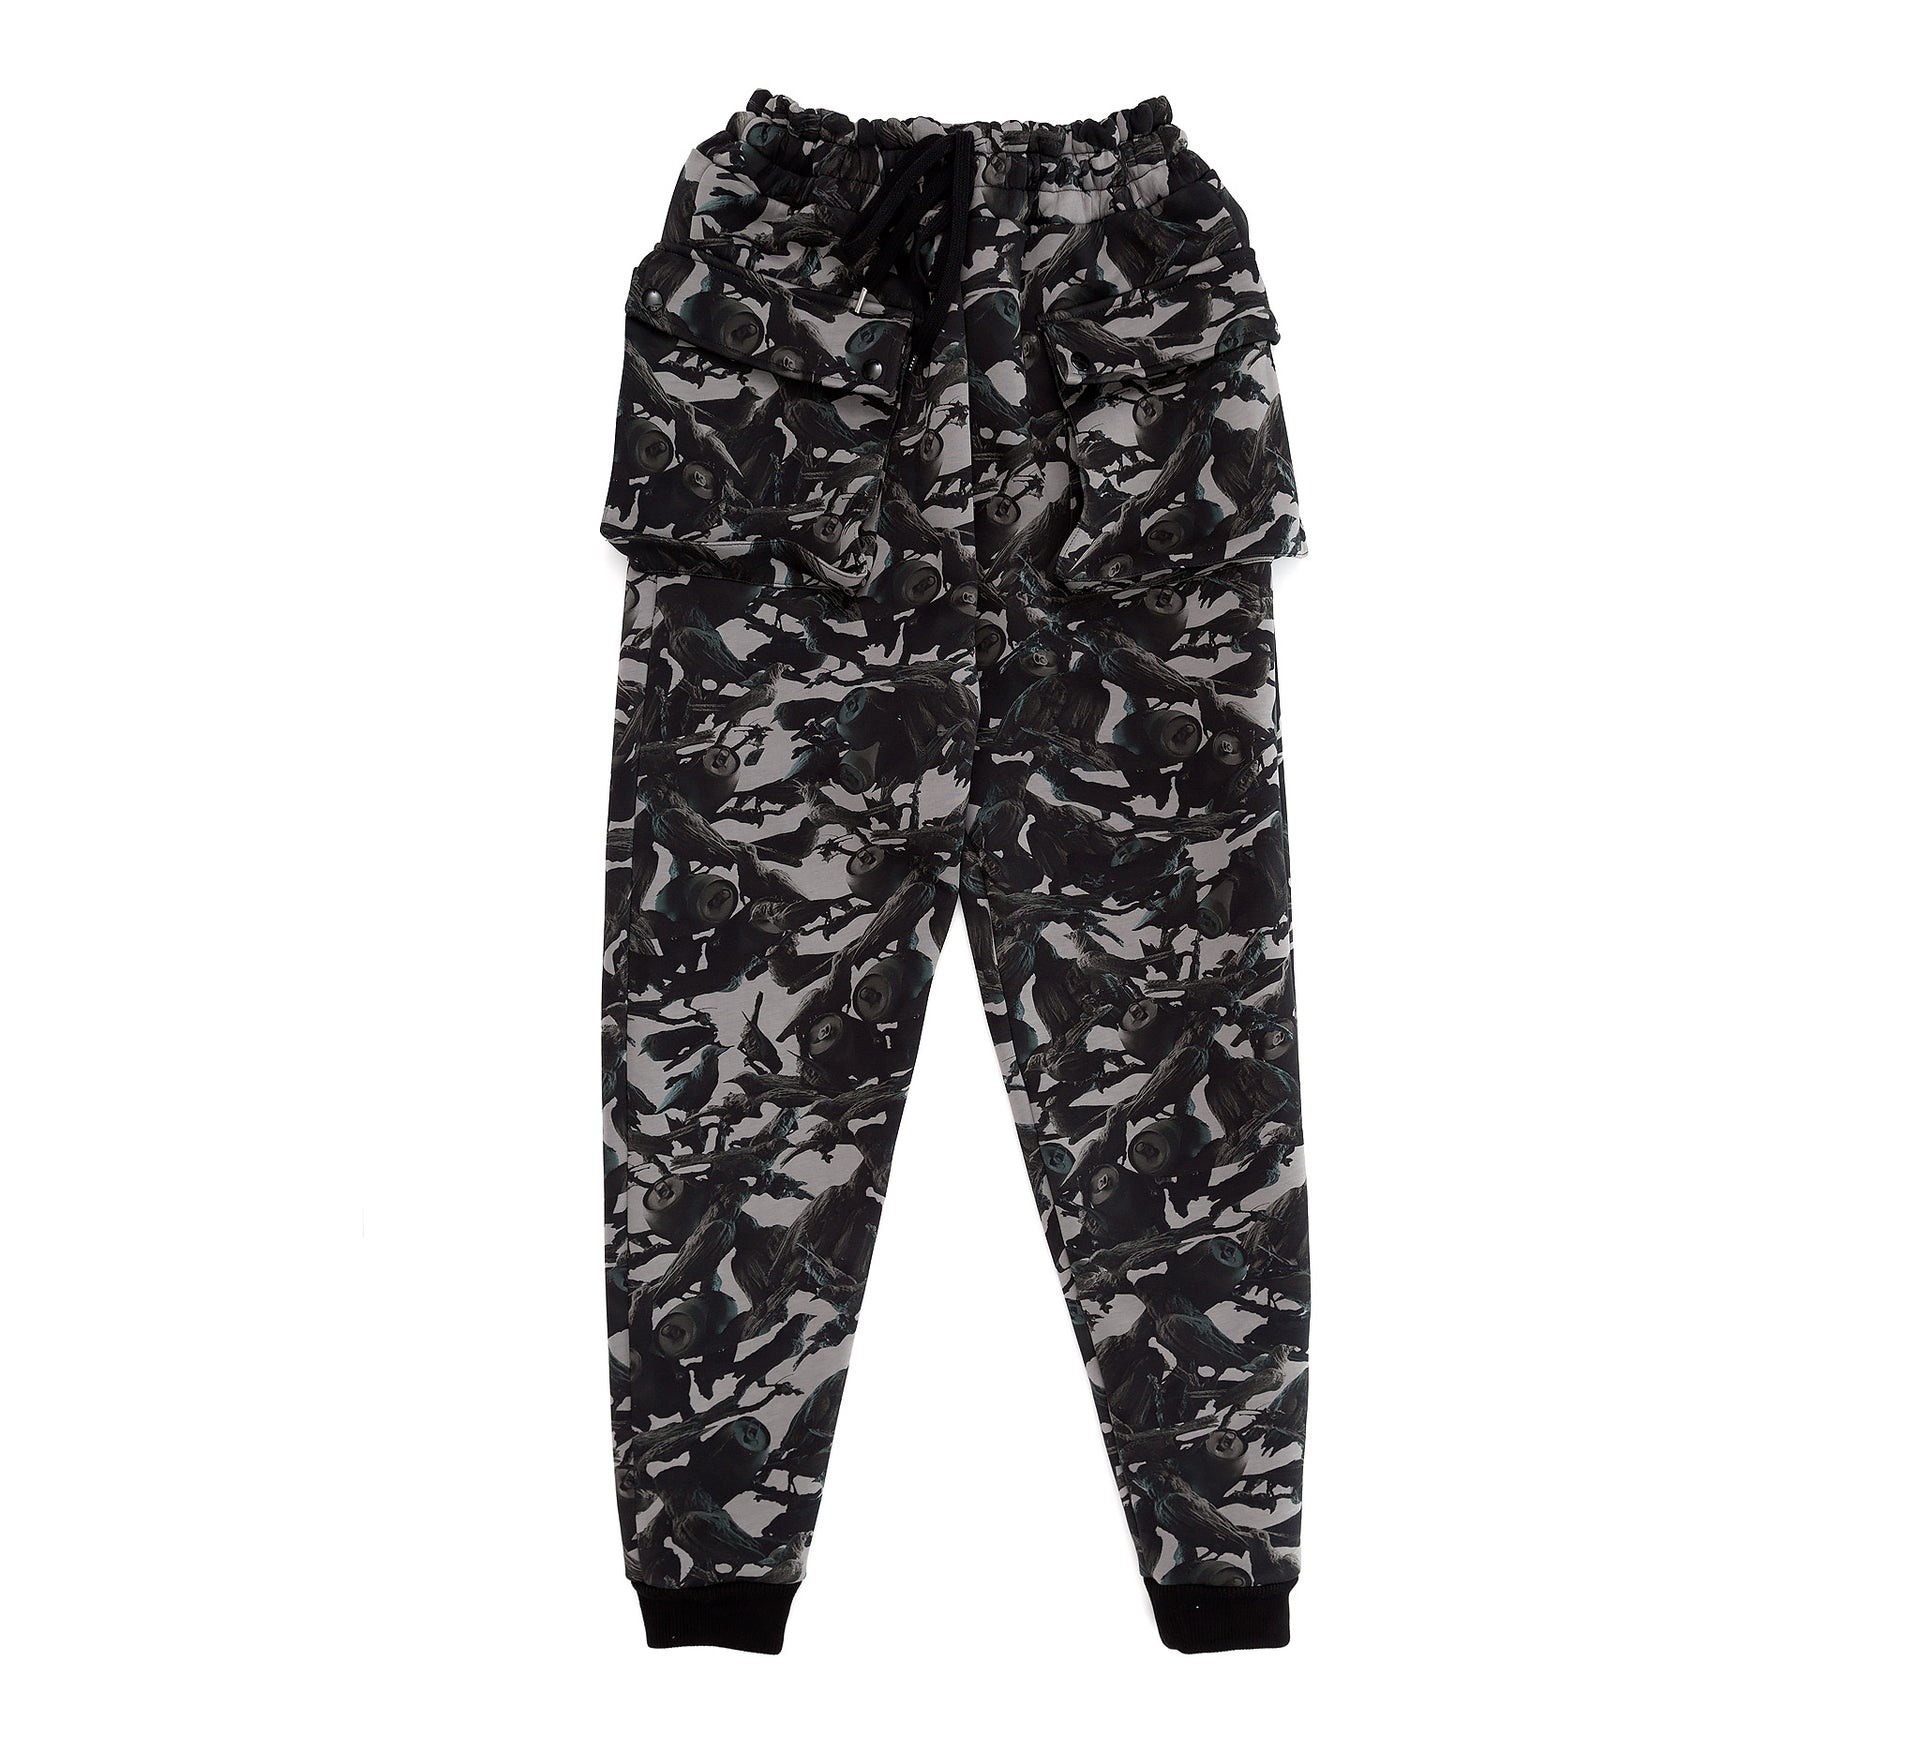 This Is Not Clothing - BIRDS OF PARADISE SWEATPANTS I